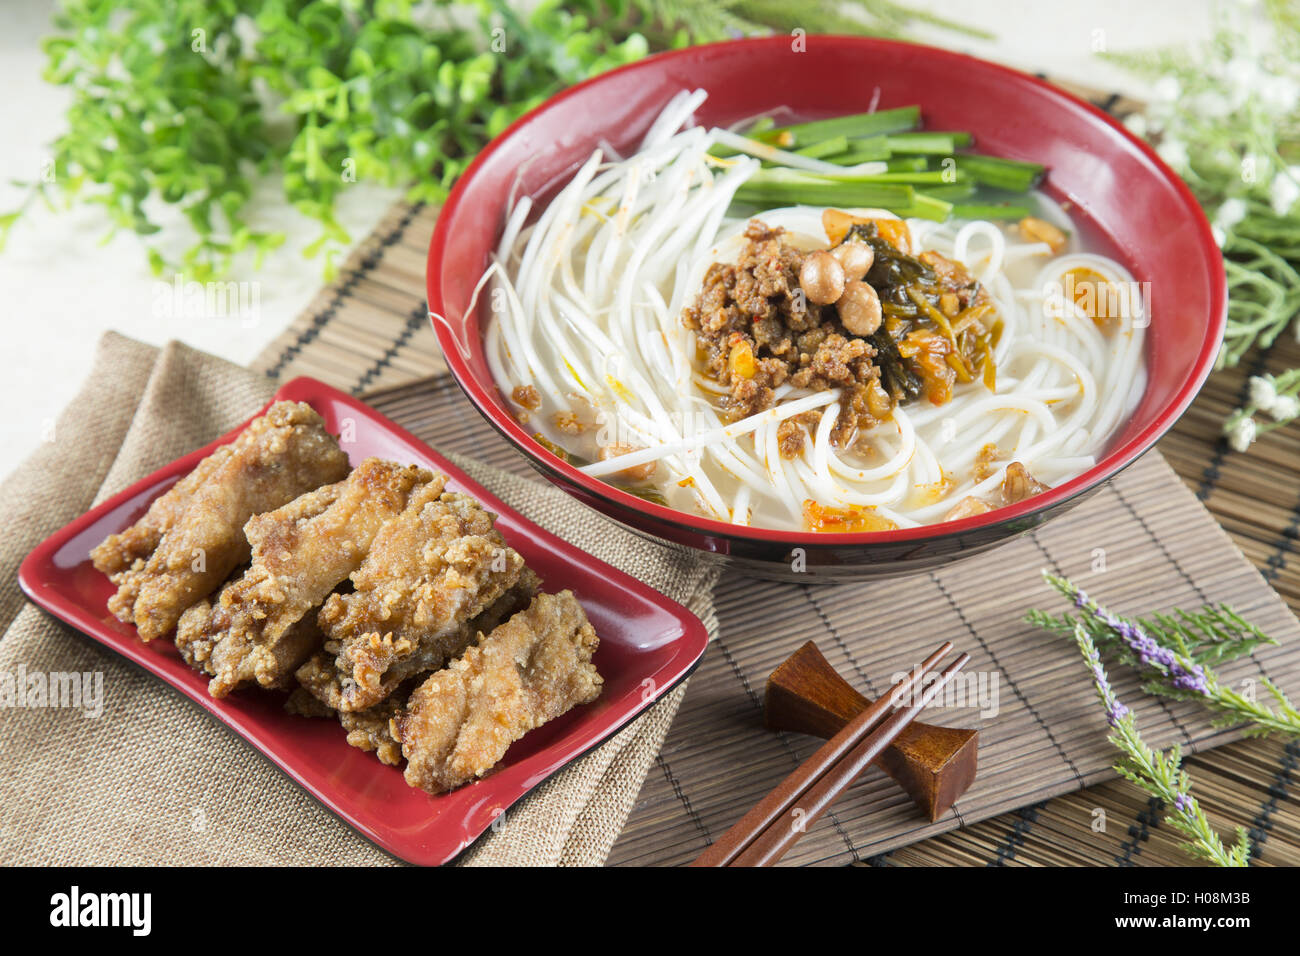 Chinese bowl of noodle with fried pork ribs and herbs on the table - Stock Image